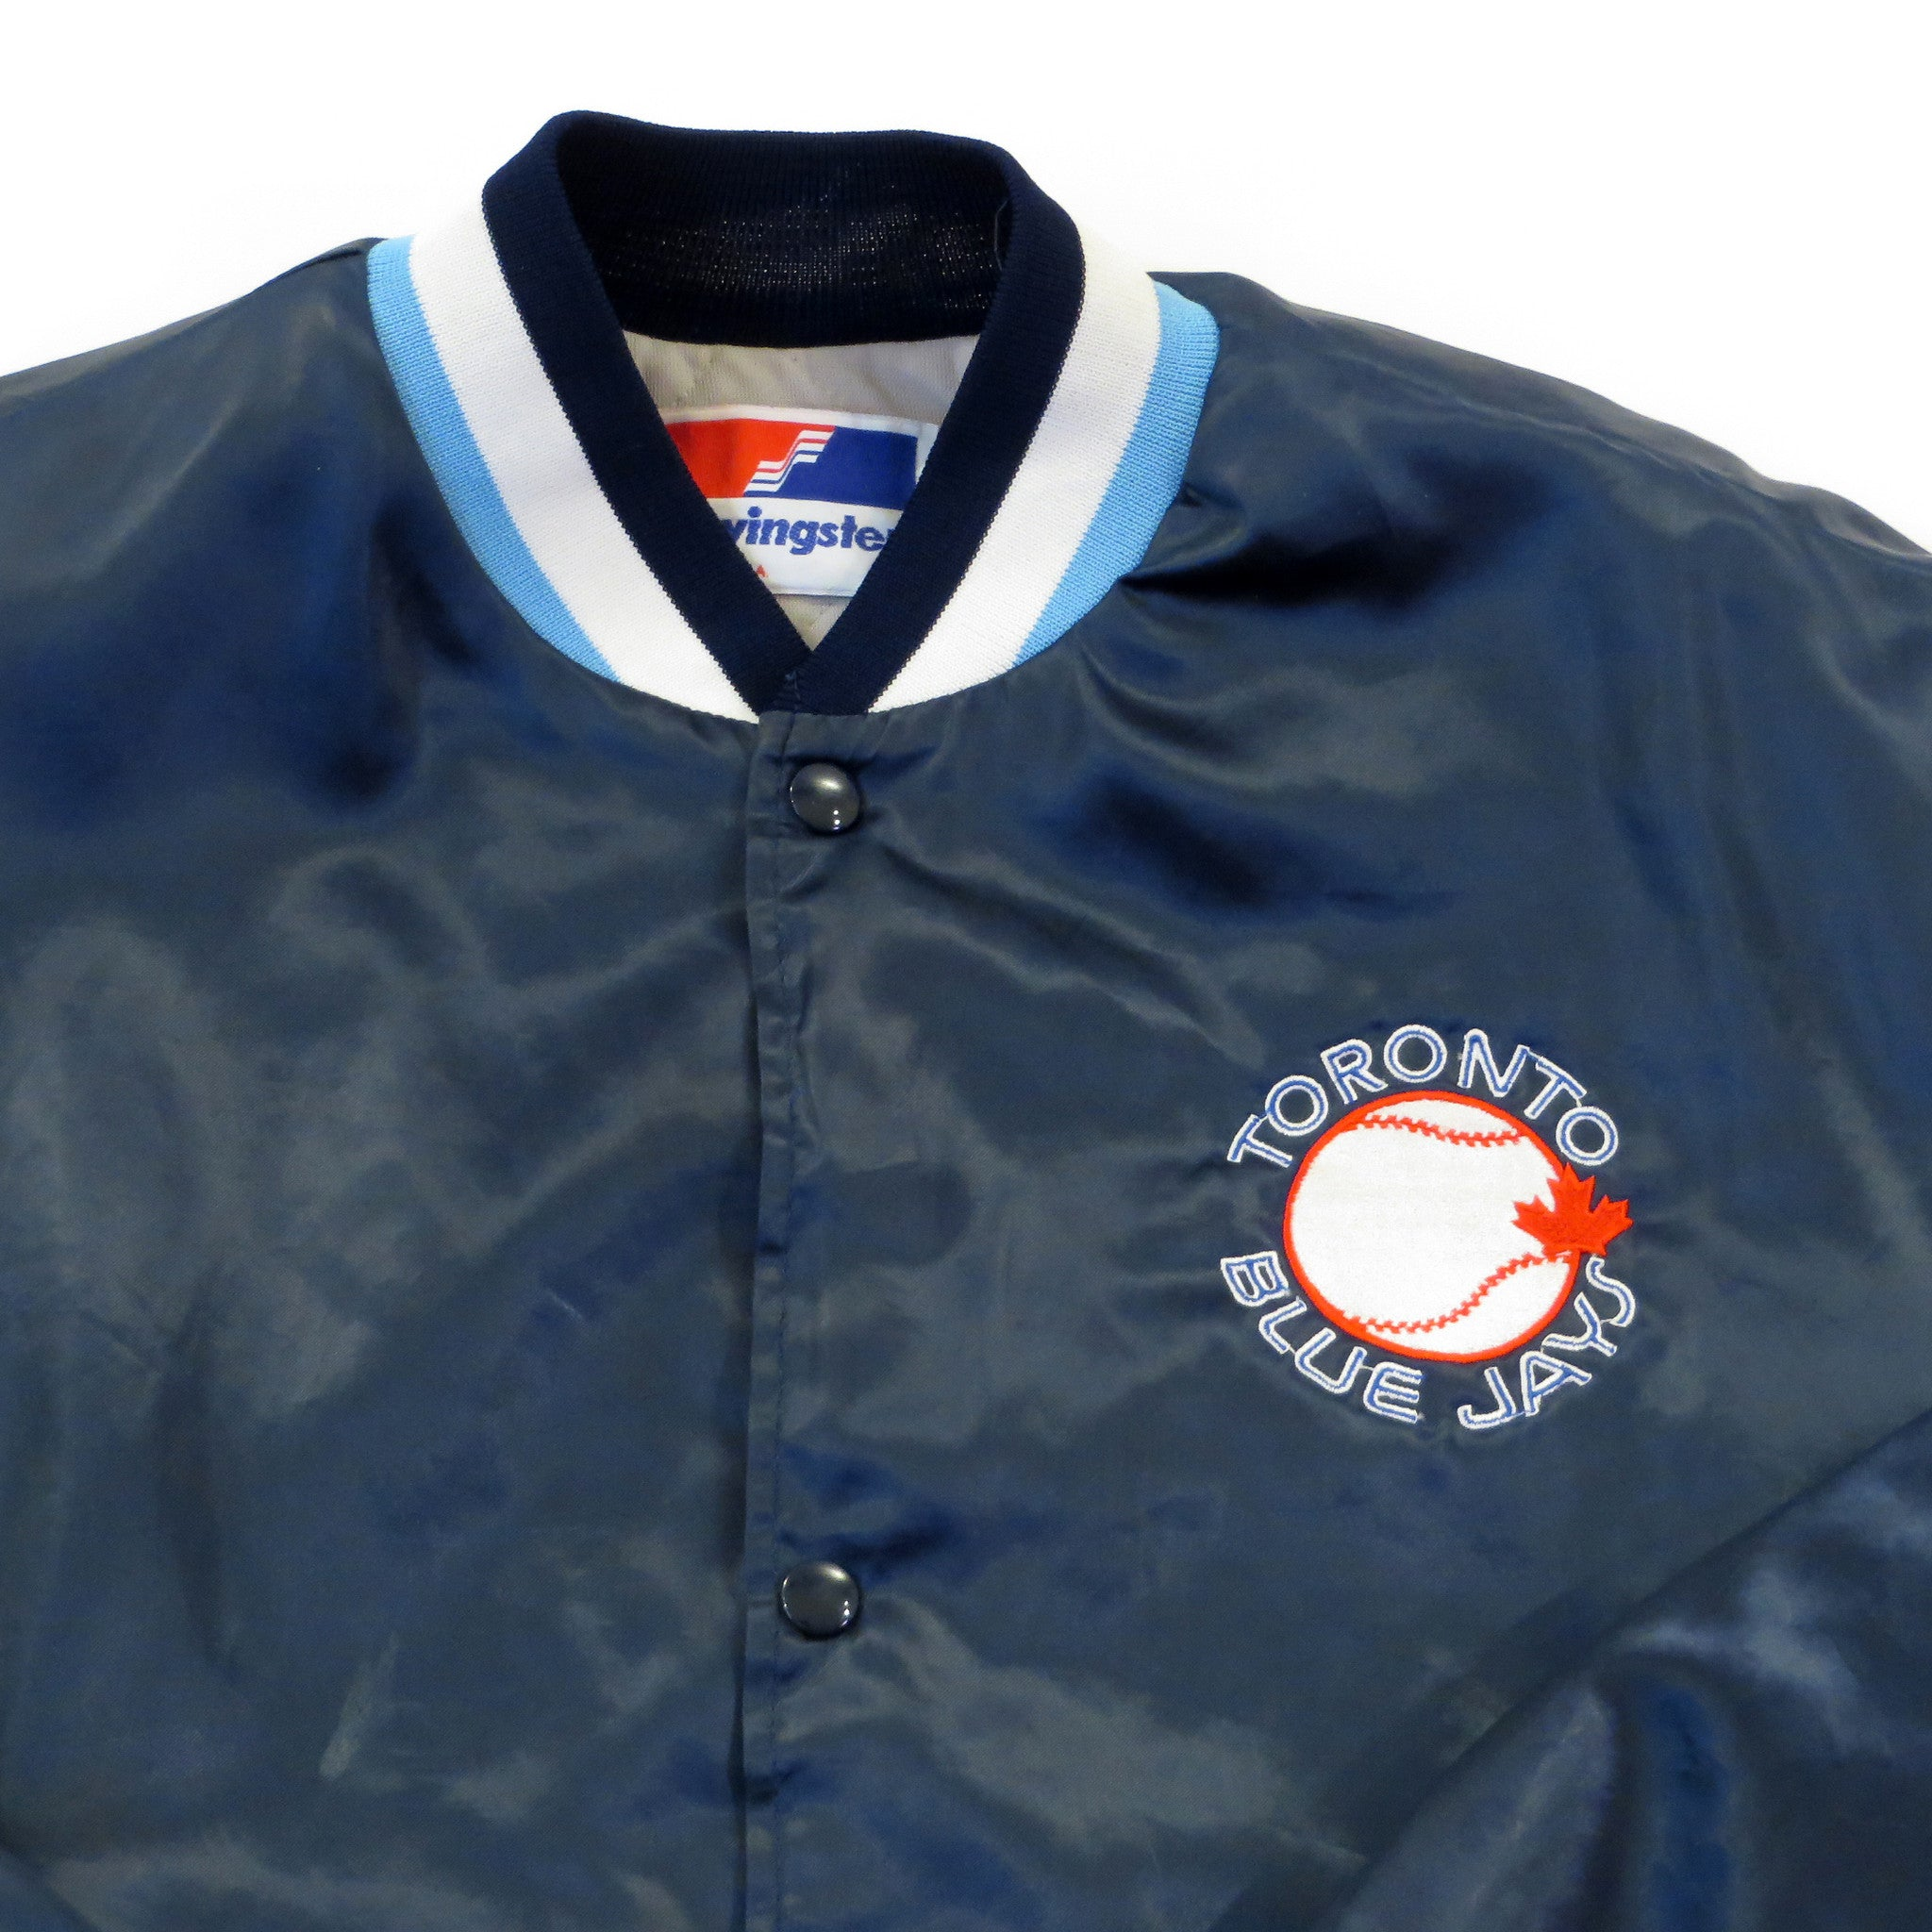 Vintage Swingster Toronto Blue Jays Jacket Sz M